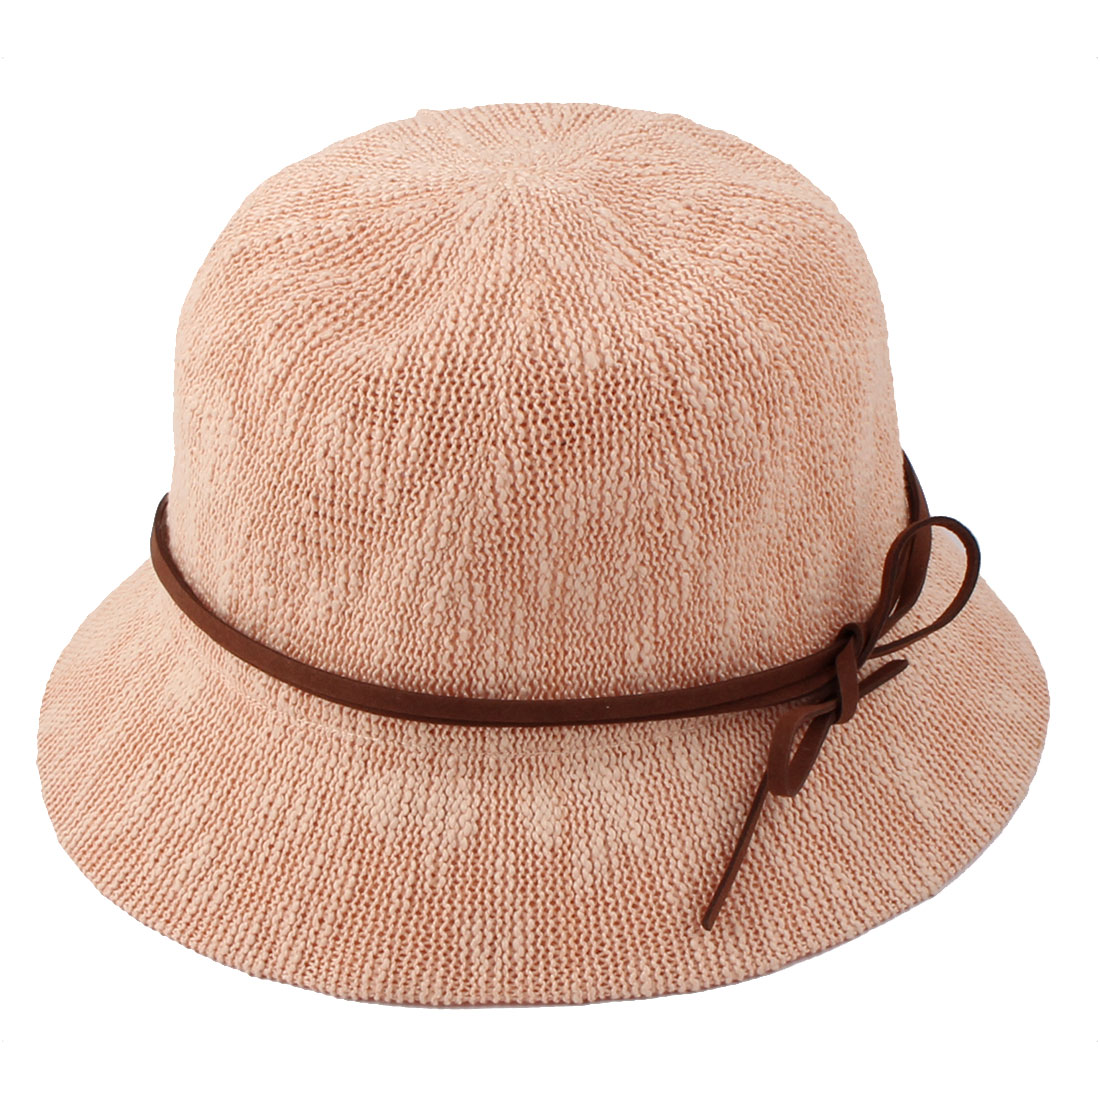 Ladies Women Straw Decoration Foldable Summer Protective Traveling Wide Brim Sun Cap Beach Fishing Hat Light Pink